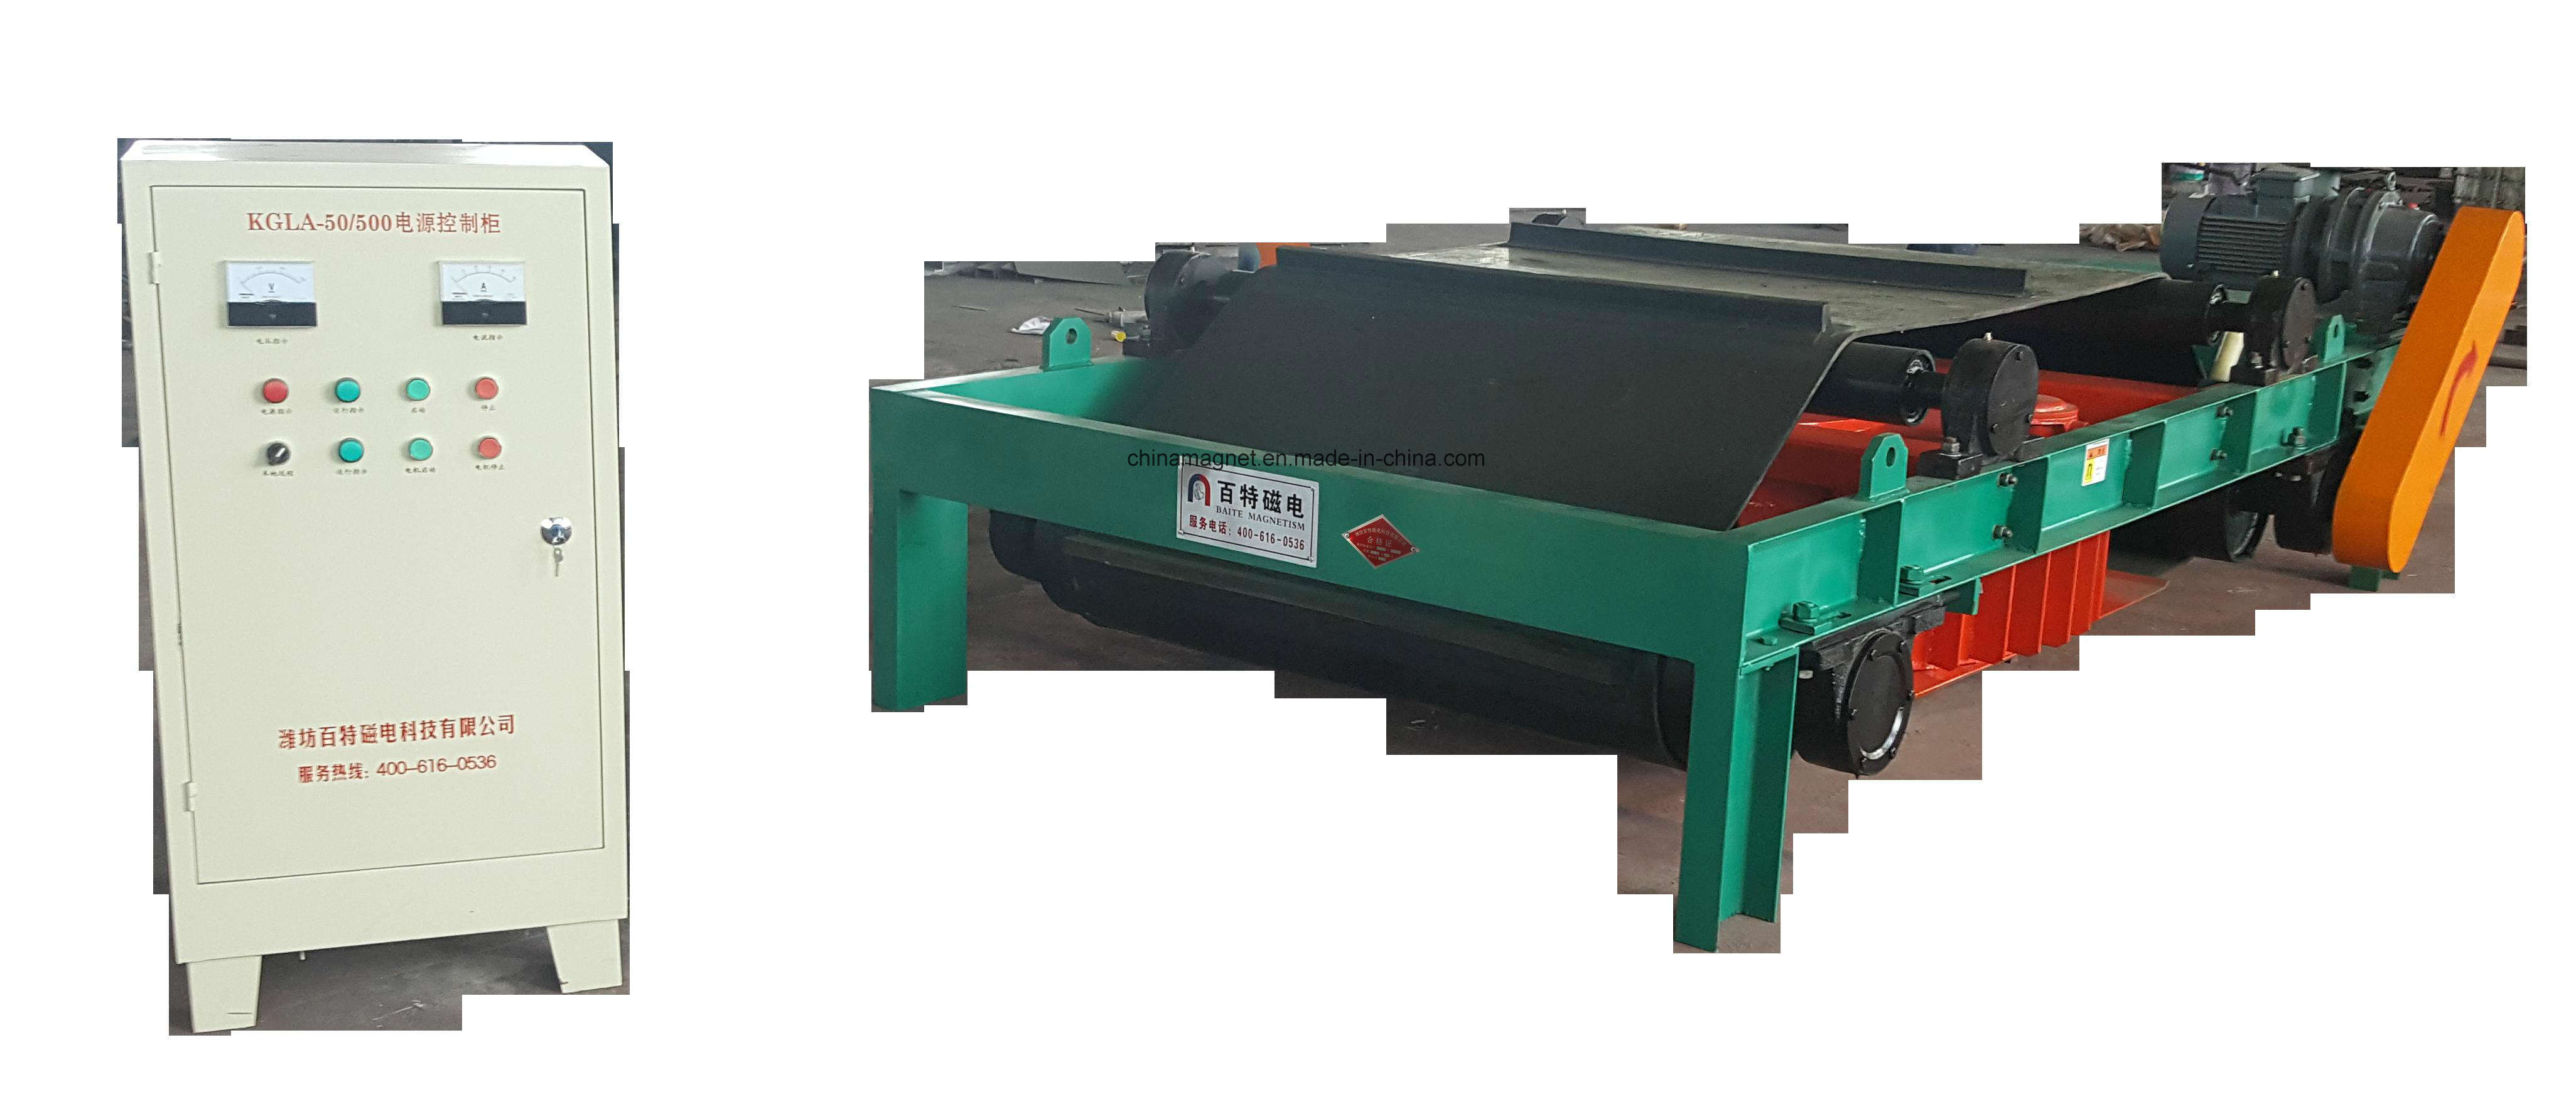 Rcdd Series Dry Type Self-Cleaning Electromagnetic Separator Used for Eliminating The Powder or Massive Waste Iron pictures & photos